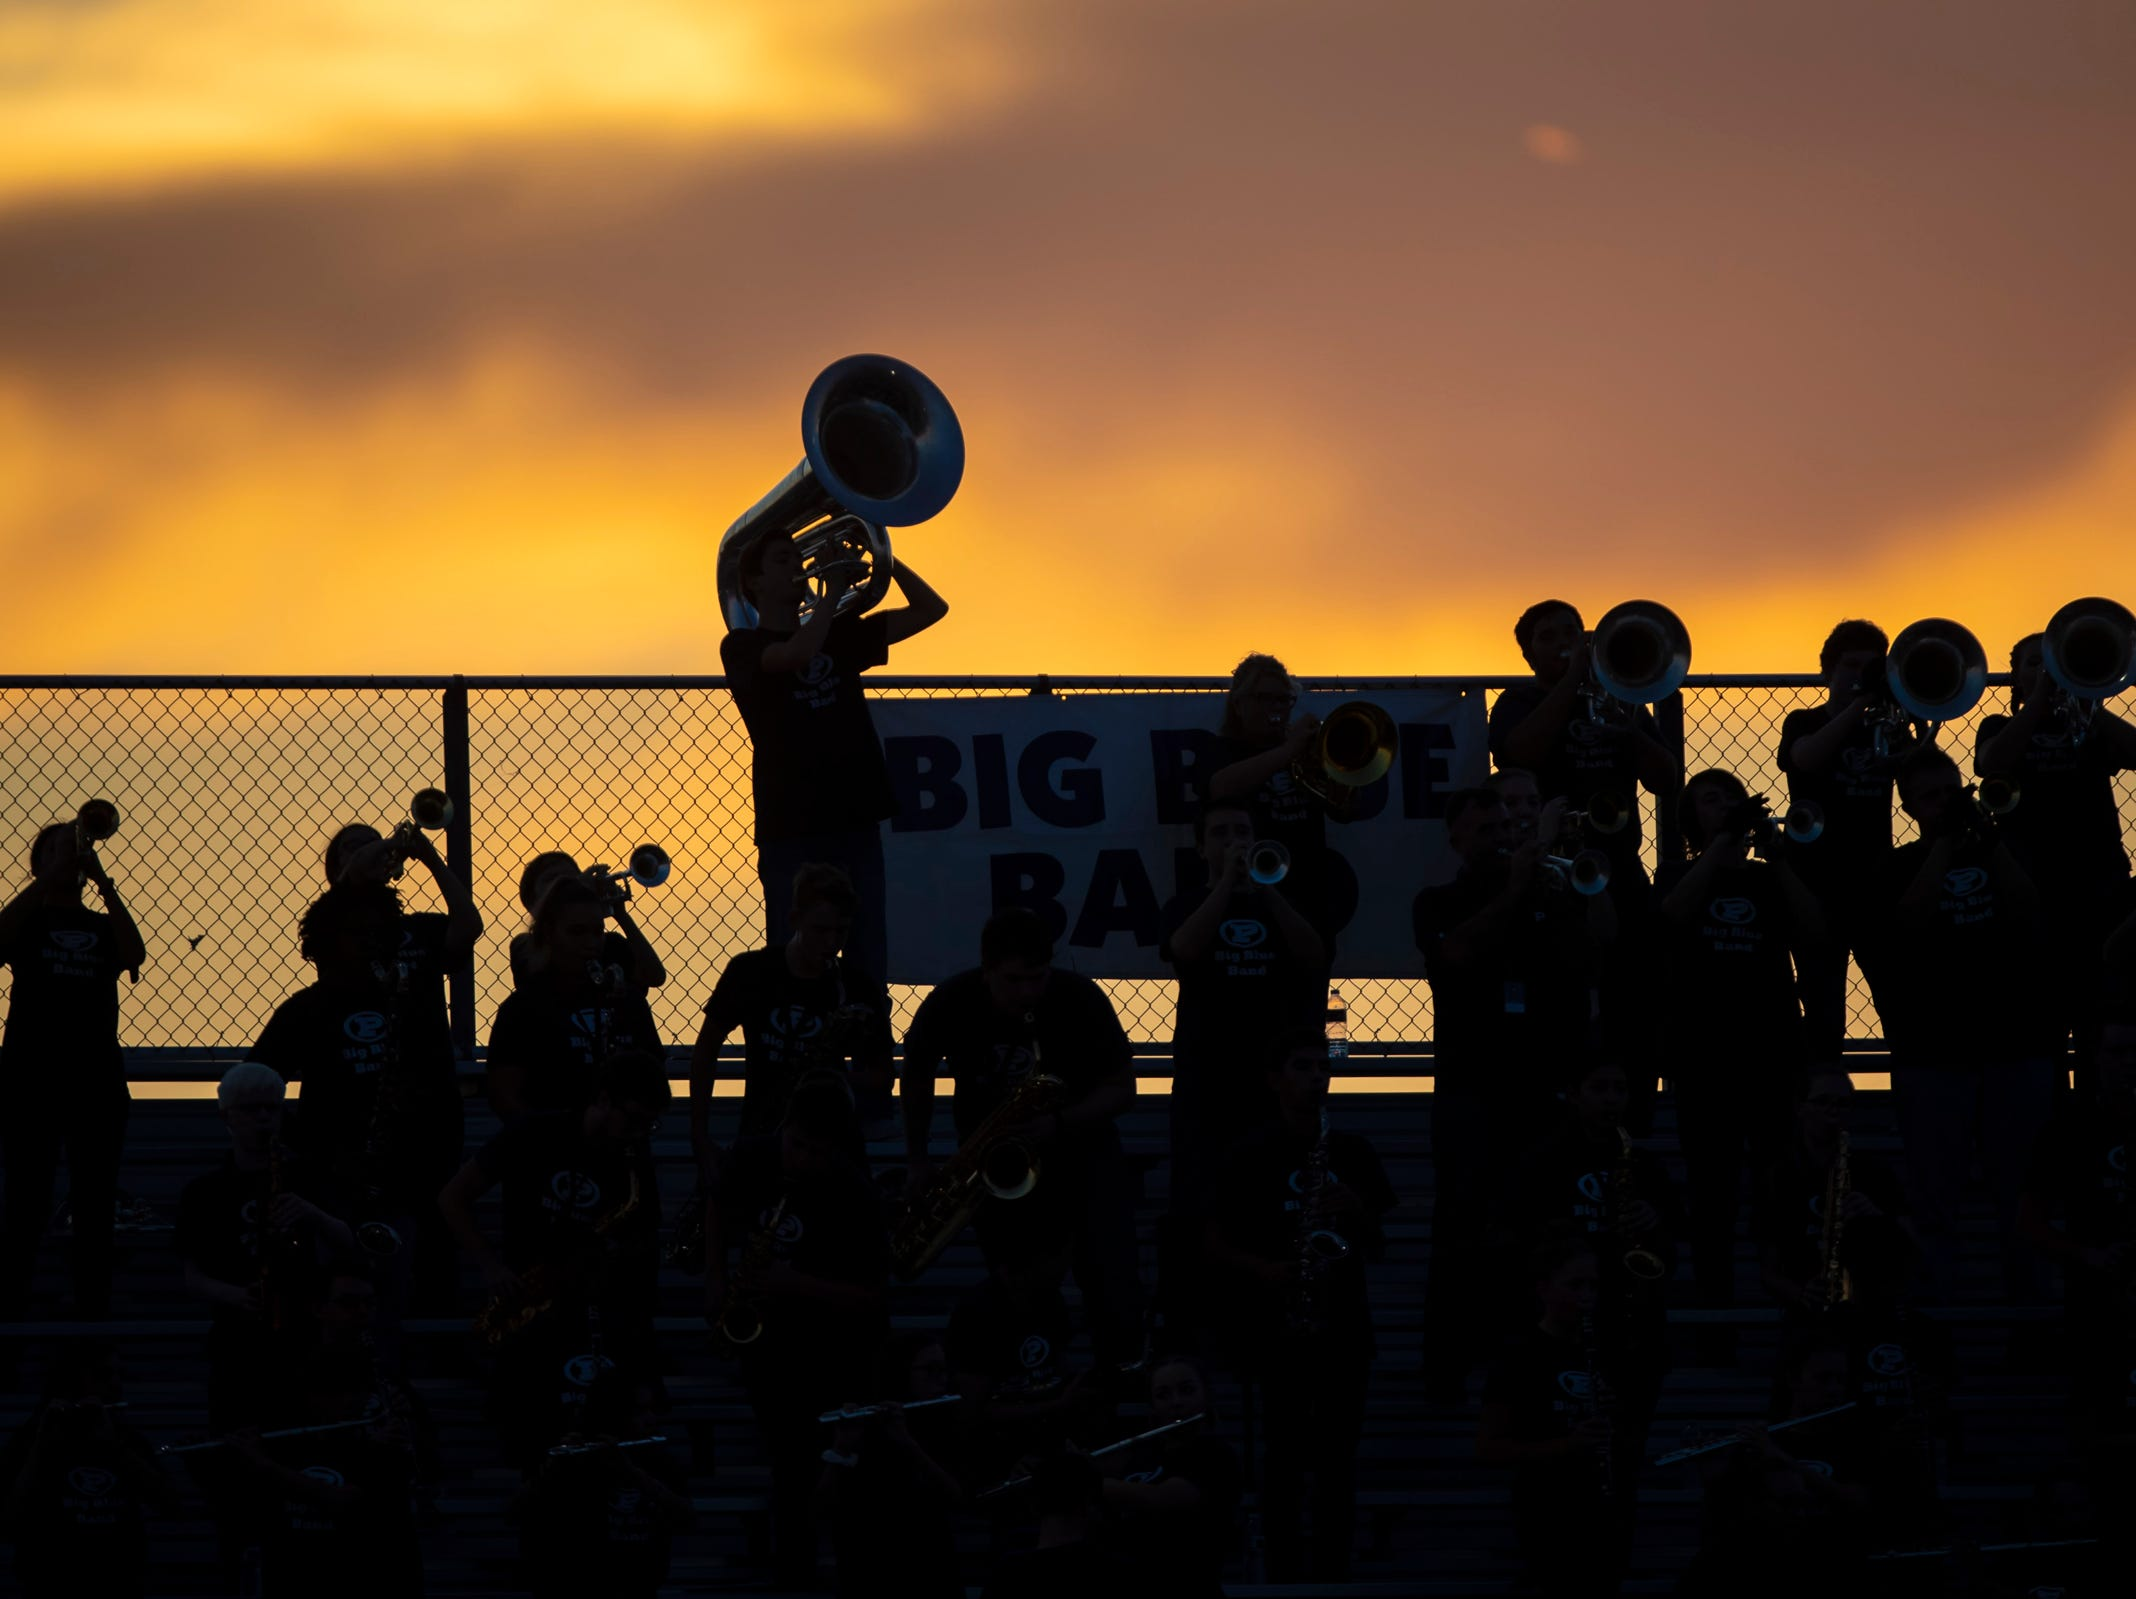 The Pinnacle Pioneers Marching Band performs prior to the game against the Perry Pumas at Pinnacle High School on Friday, August 17, 2018 in Phoenix, Arizona.